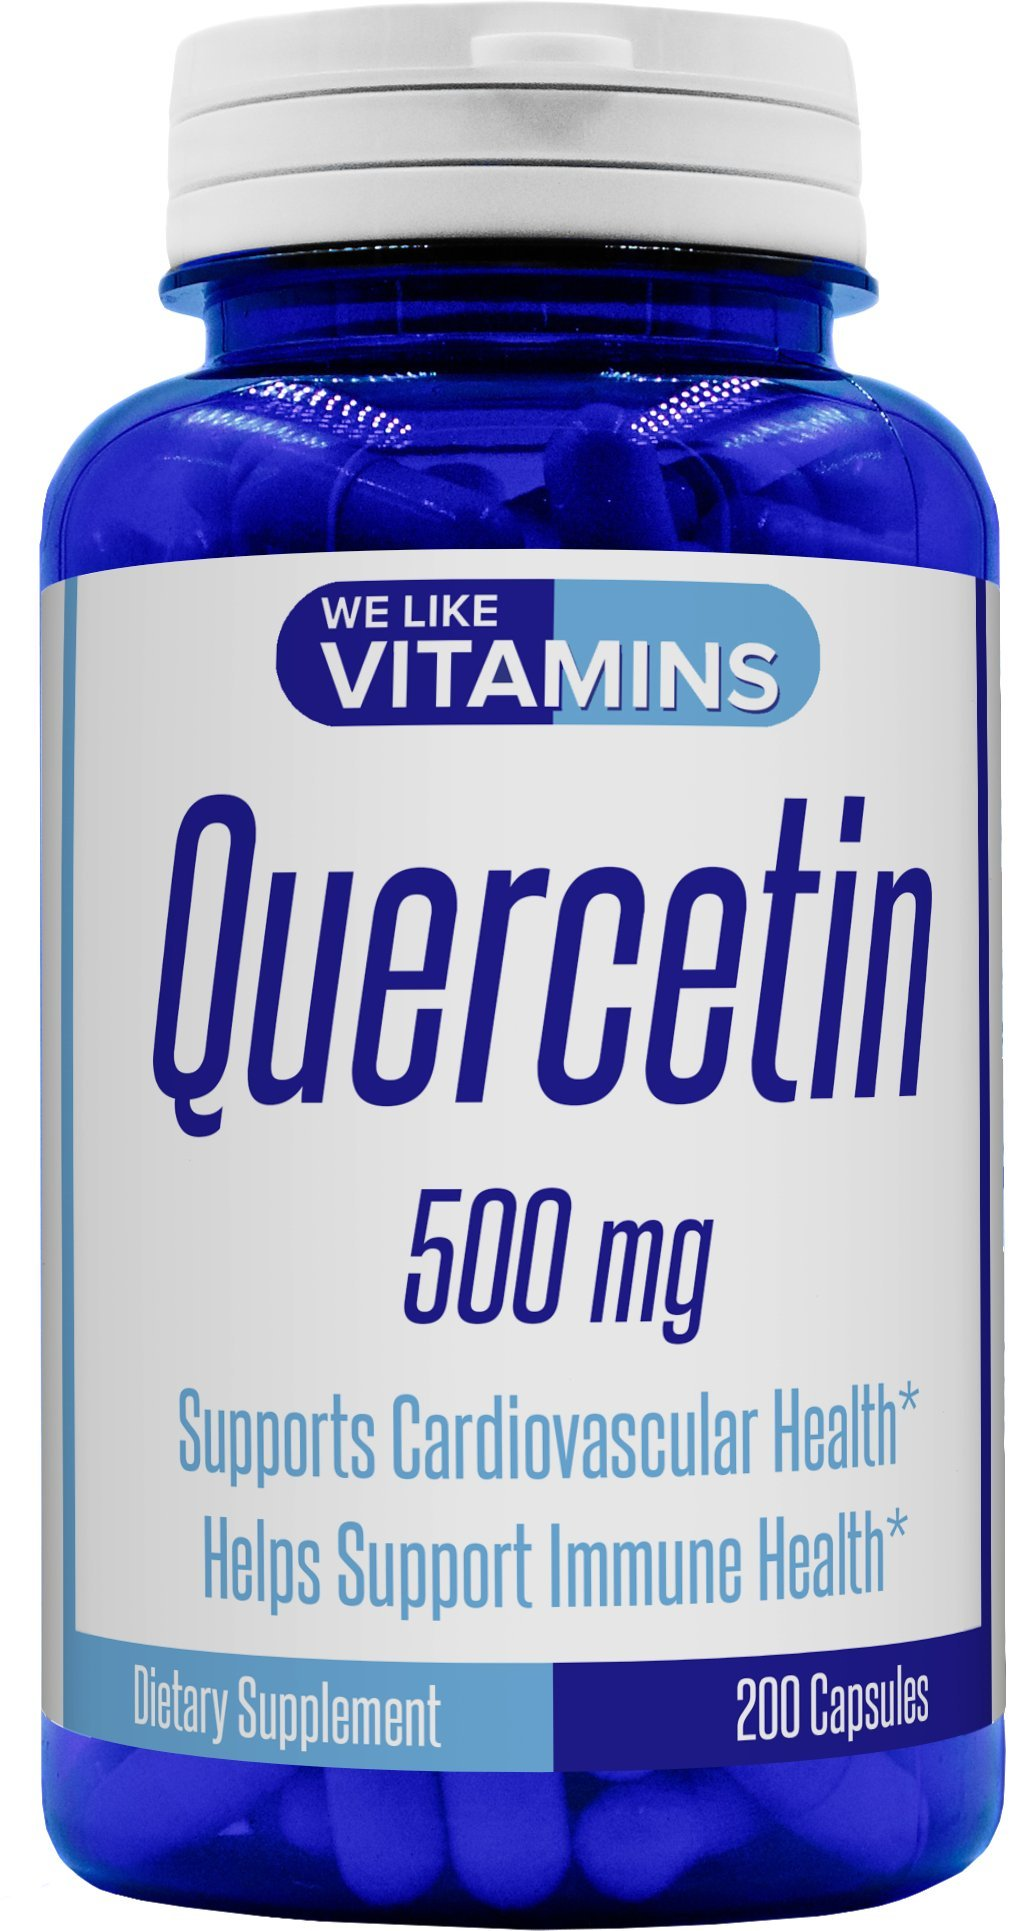 Quercetin 500mg 200 Capsules Best Value Natural Antihistamine Quercetin Supplement